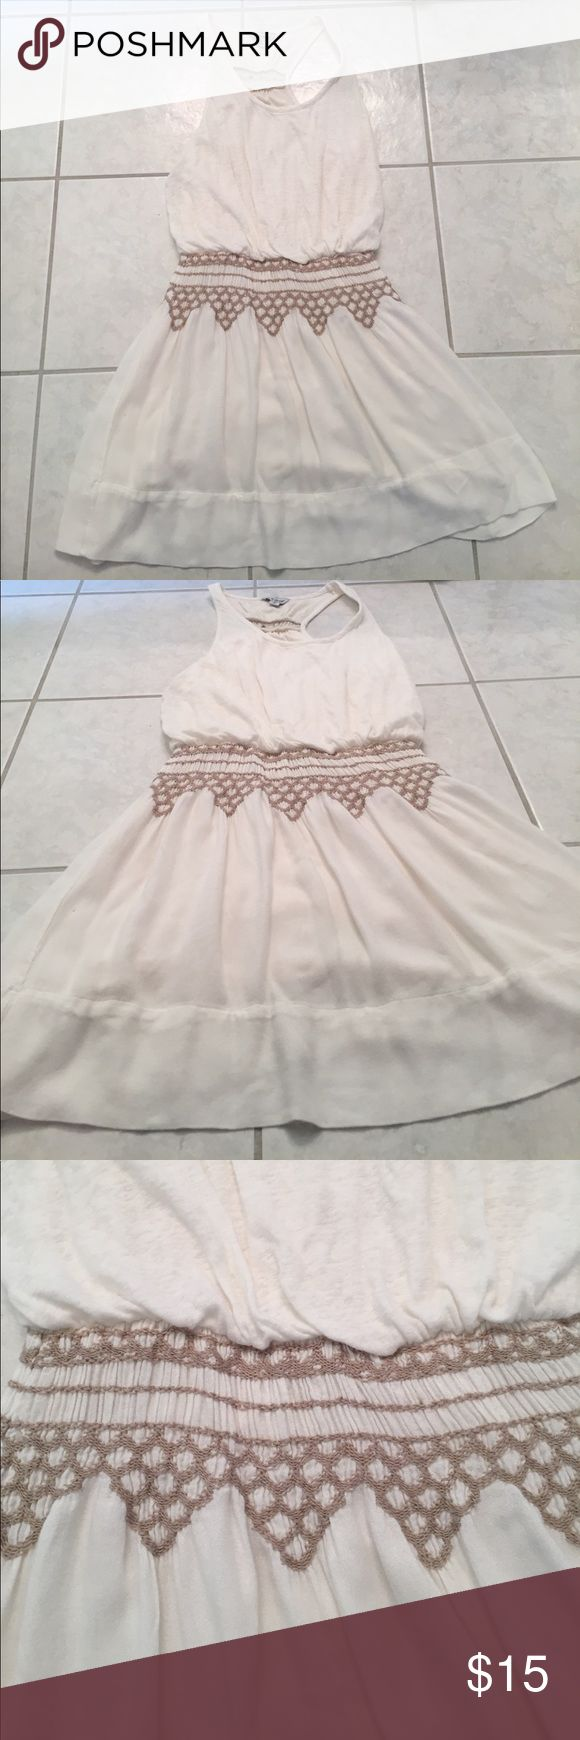 Cream summer dress This dress is great for summer! It is a great cream color with a lining underneath, which makes it not see through at all. It has a great elastic waist with a fun pattern. Lucky Brand Dresses